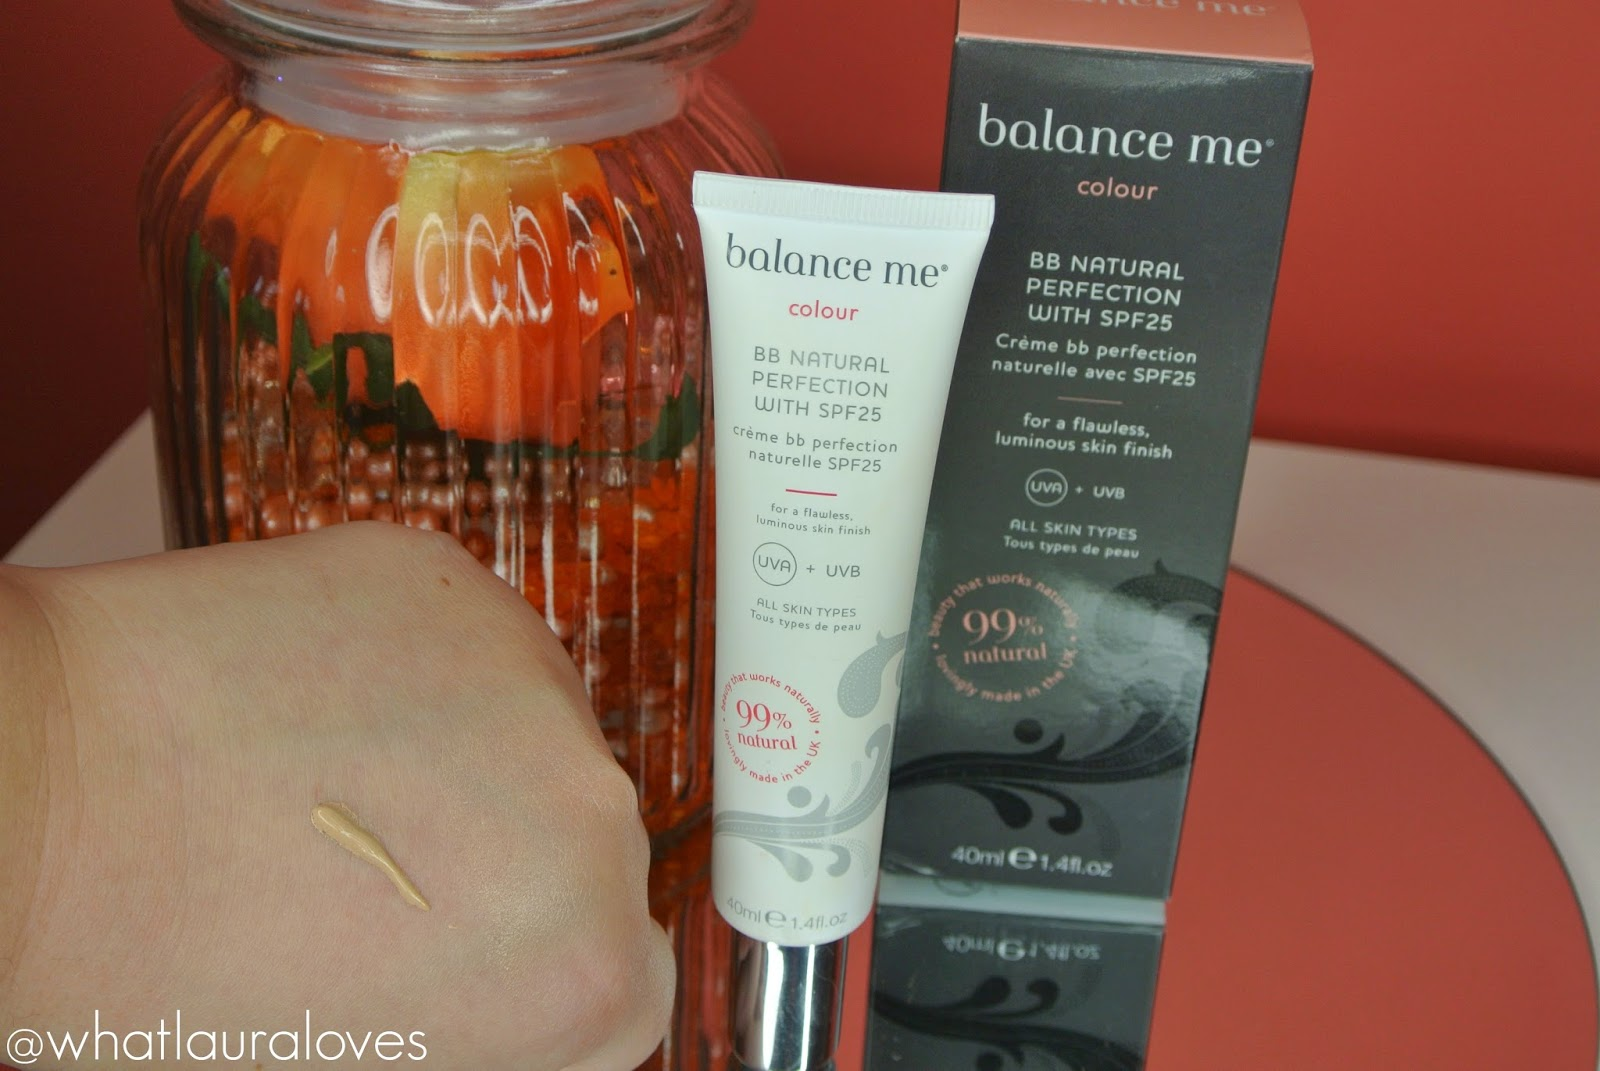 Balance Me BB Natural Perfection with SPF25